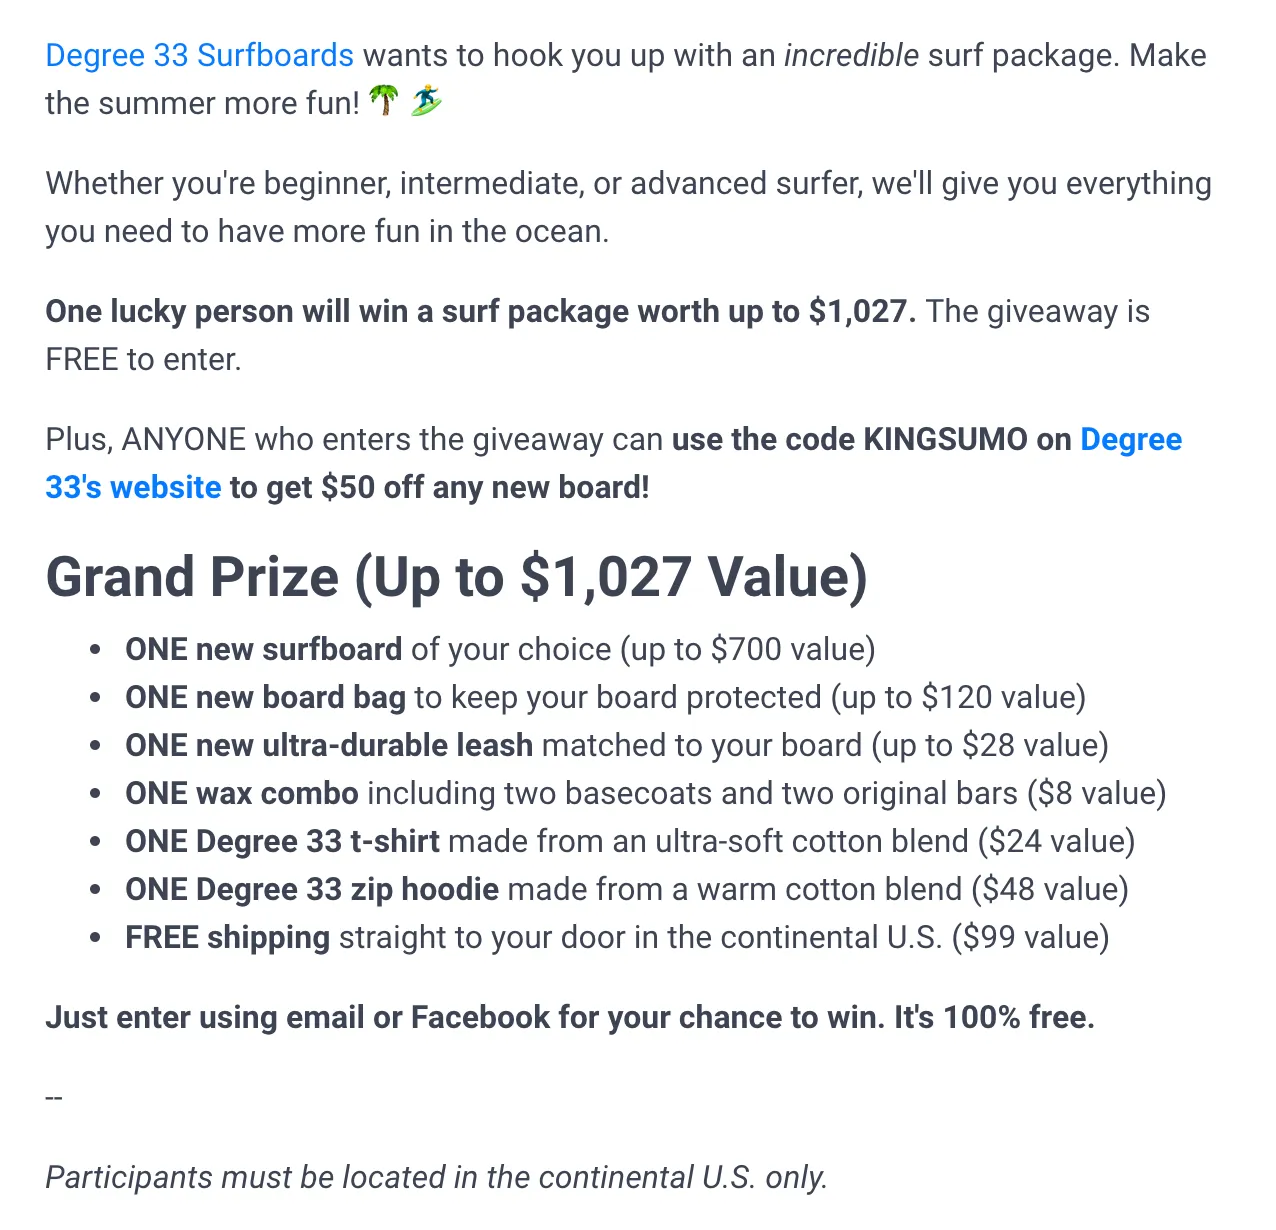 Example of a giveaway competition